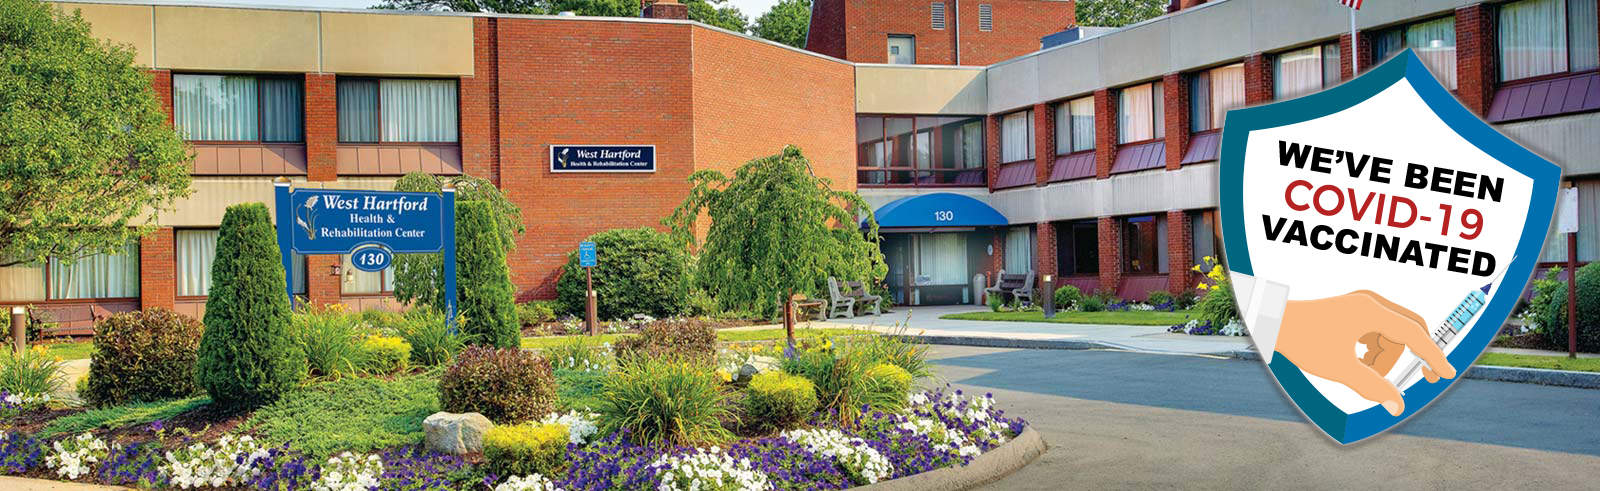 West Hartford Health of West Hartford, CT